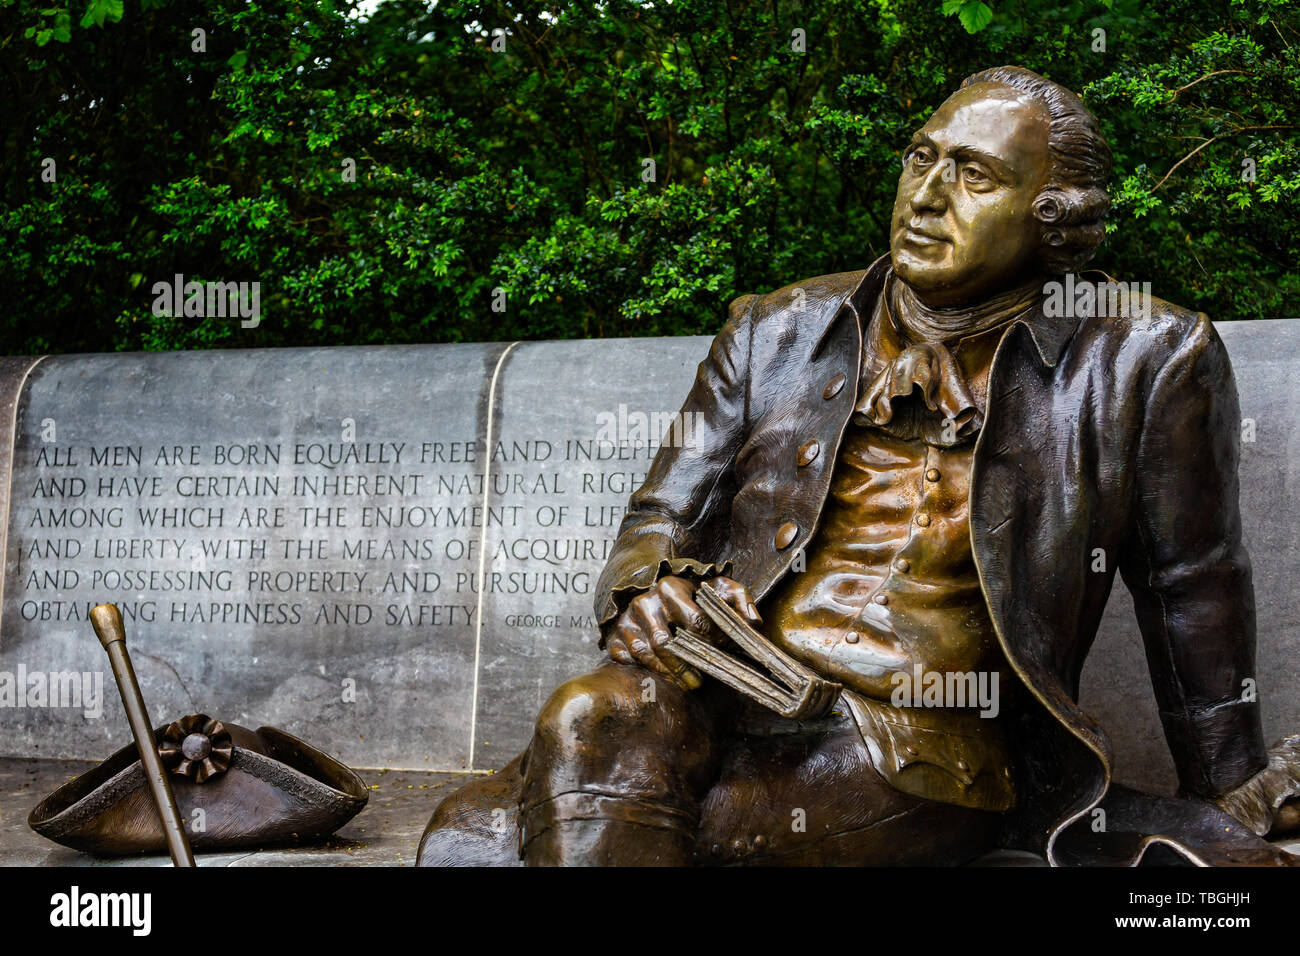 Statue of US Founding Father George Mason in the George Mason Memorial garden in Washington DC, USA on 13 May 2019 Stock Photo